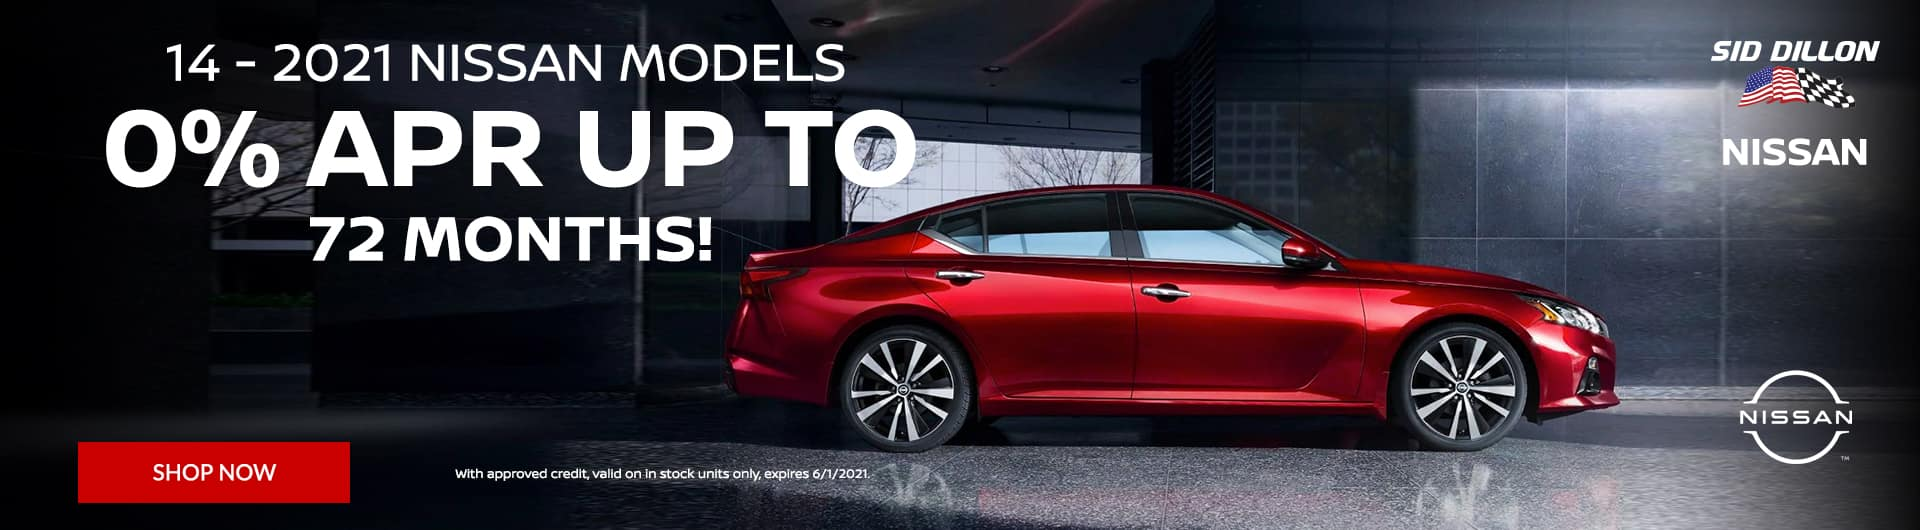 0% APR up to 72 months on 2021 Nissan Models